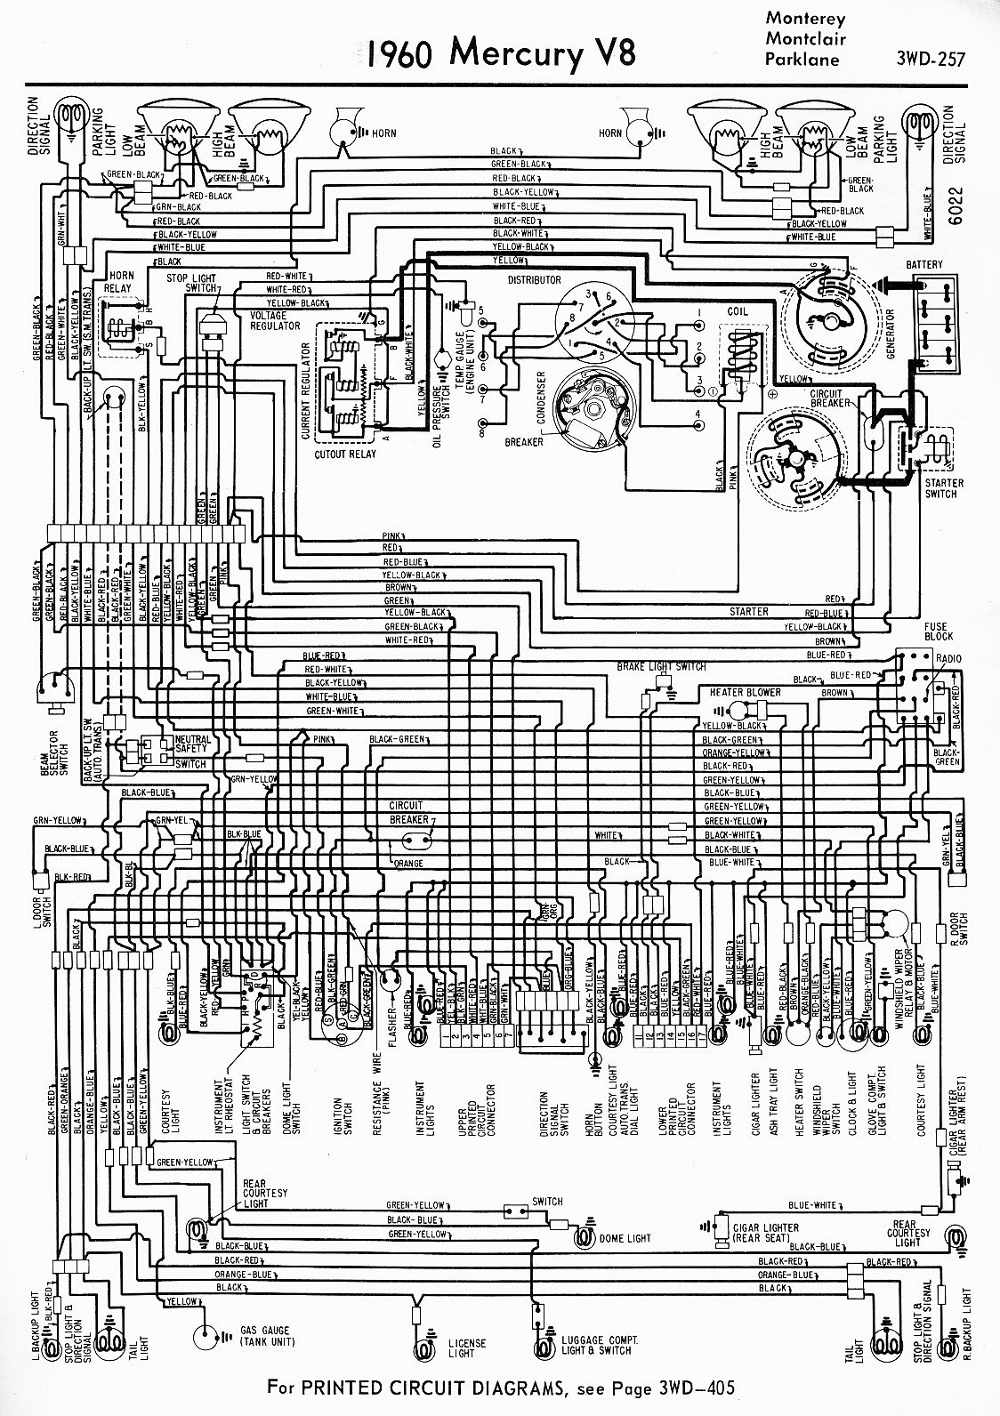 1966 mercury wiring diagram wiring diagrams schematics 1965 mercury parklane wiring diagram wiring diagrams schematics mercury car manuals wiring diagrams pdf fault codes 1965 mercury parklane wiring diagram cheapraybanclubmaster Gallery